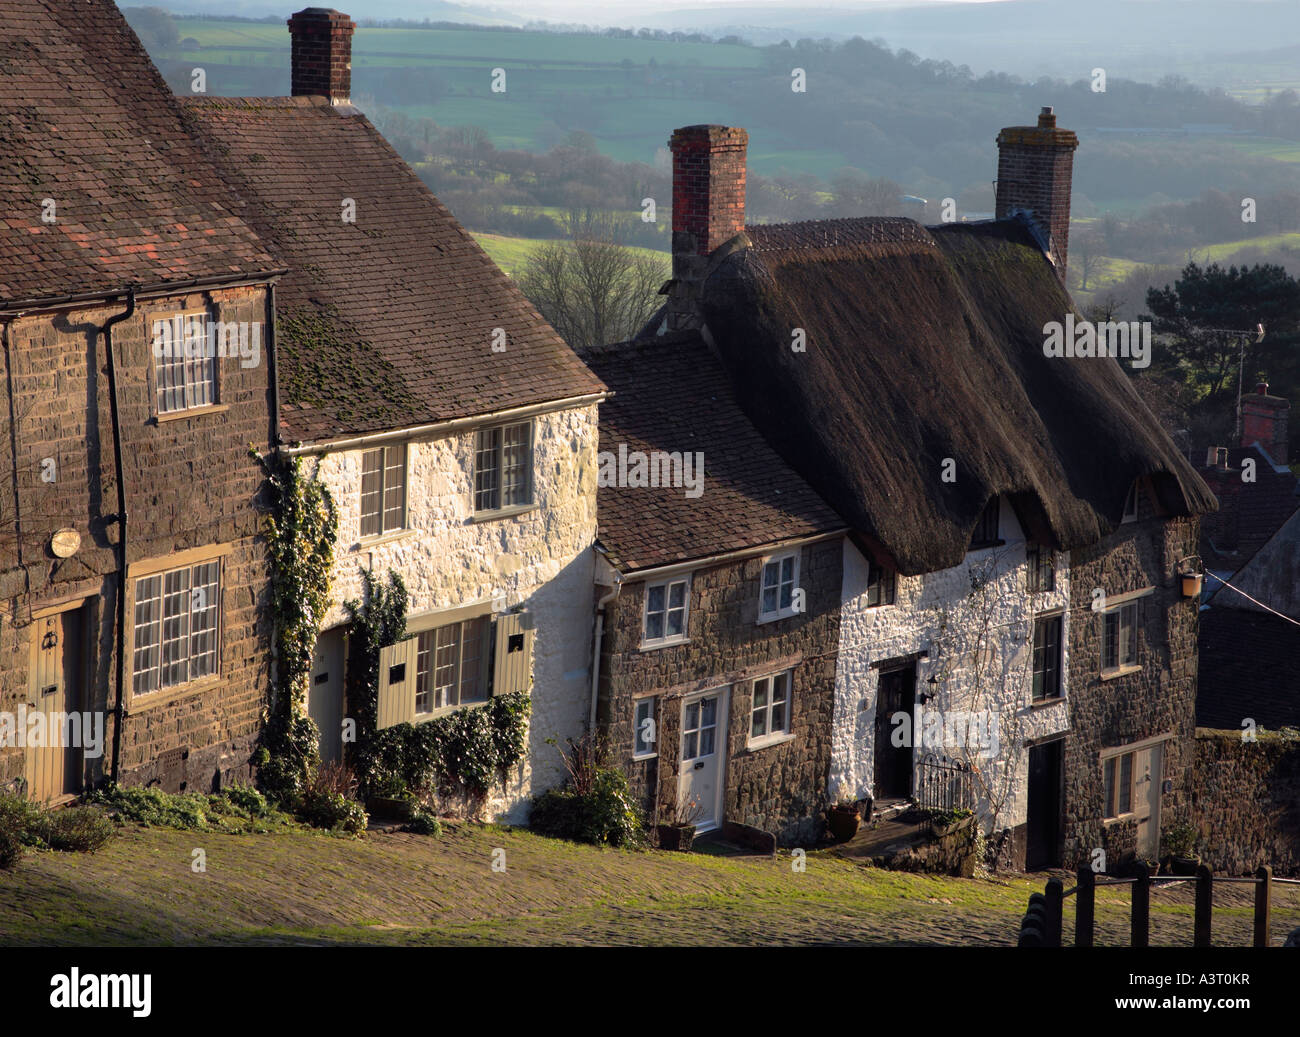 Cottages on Gold Hill Shaftesbury Village Dorset England - Stock Image